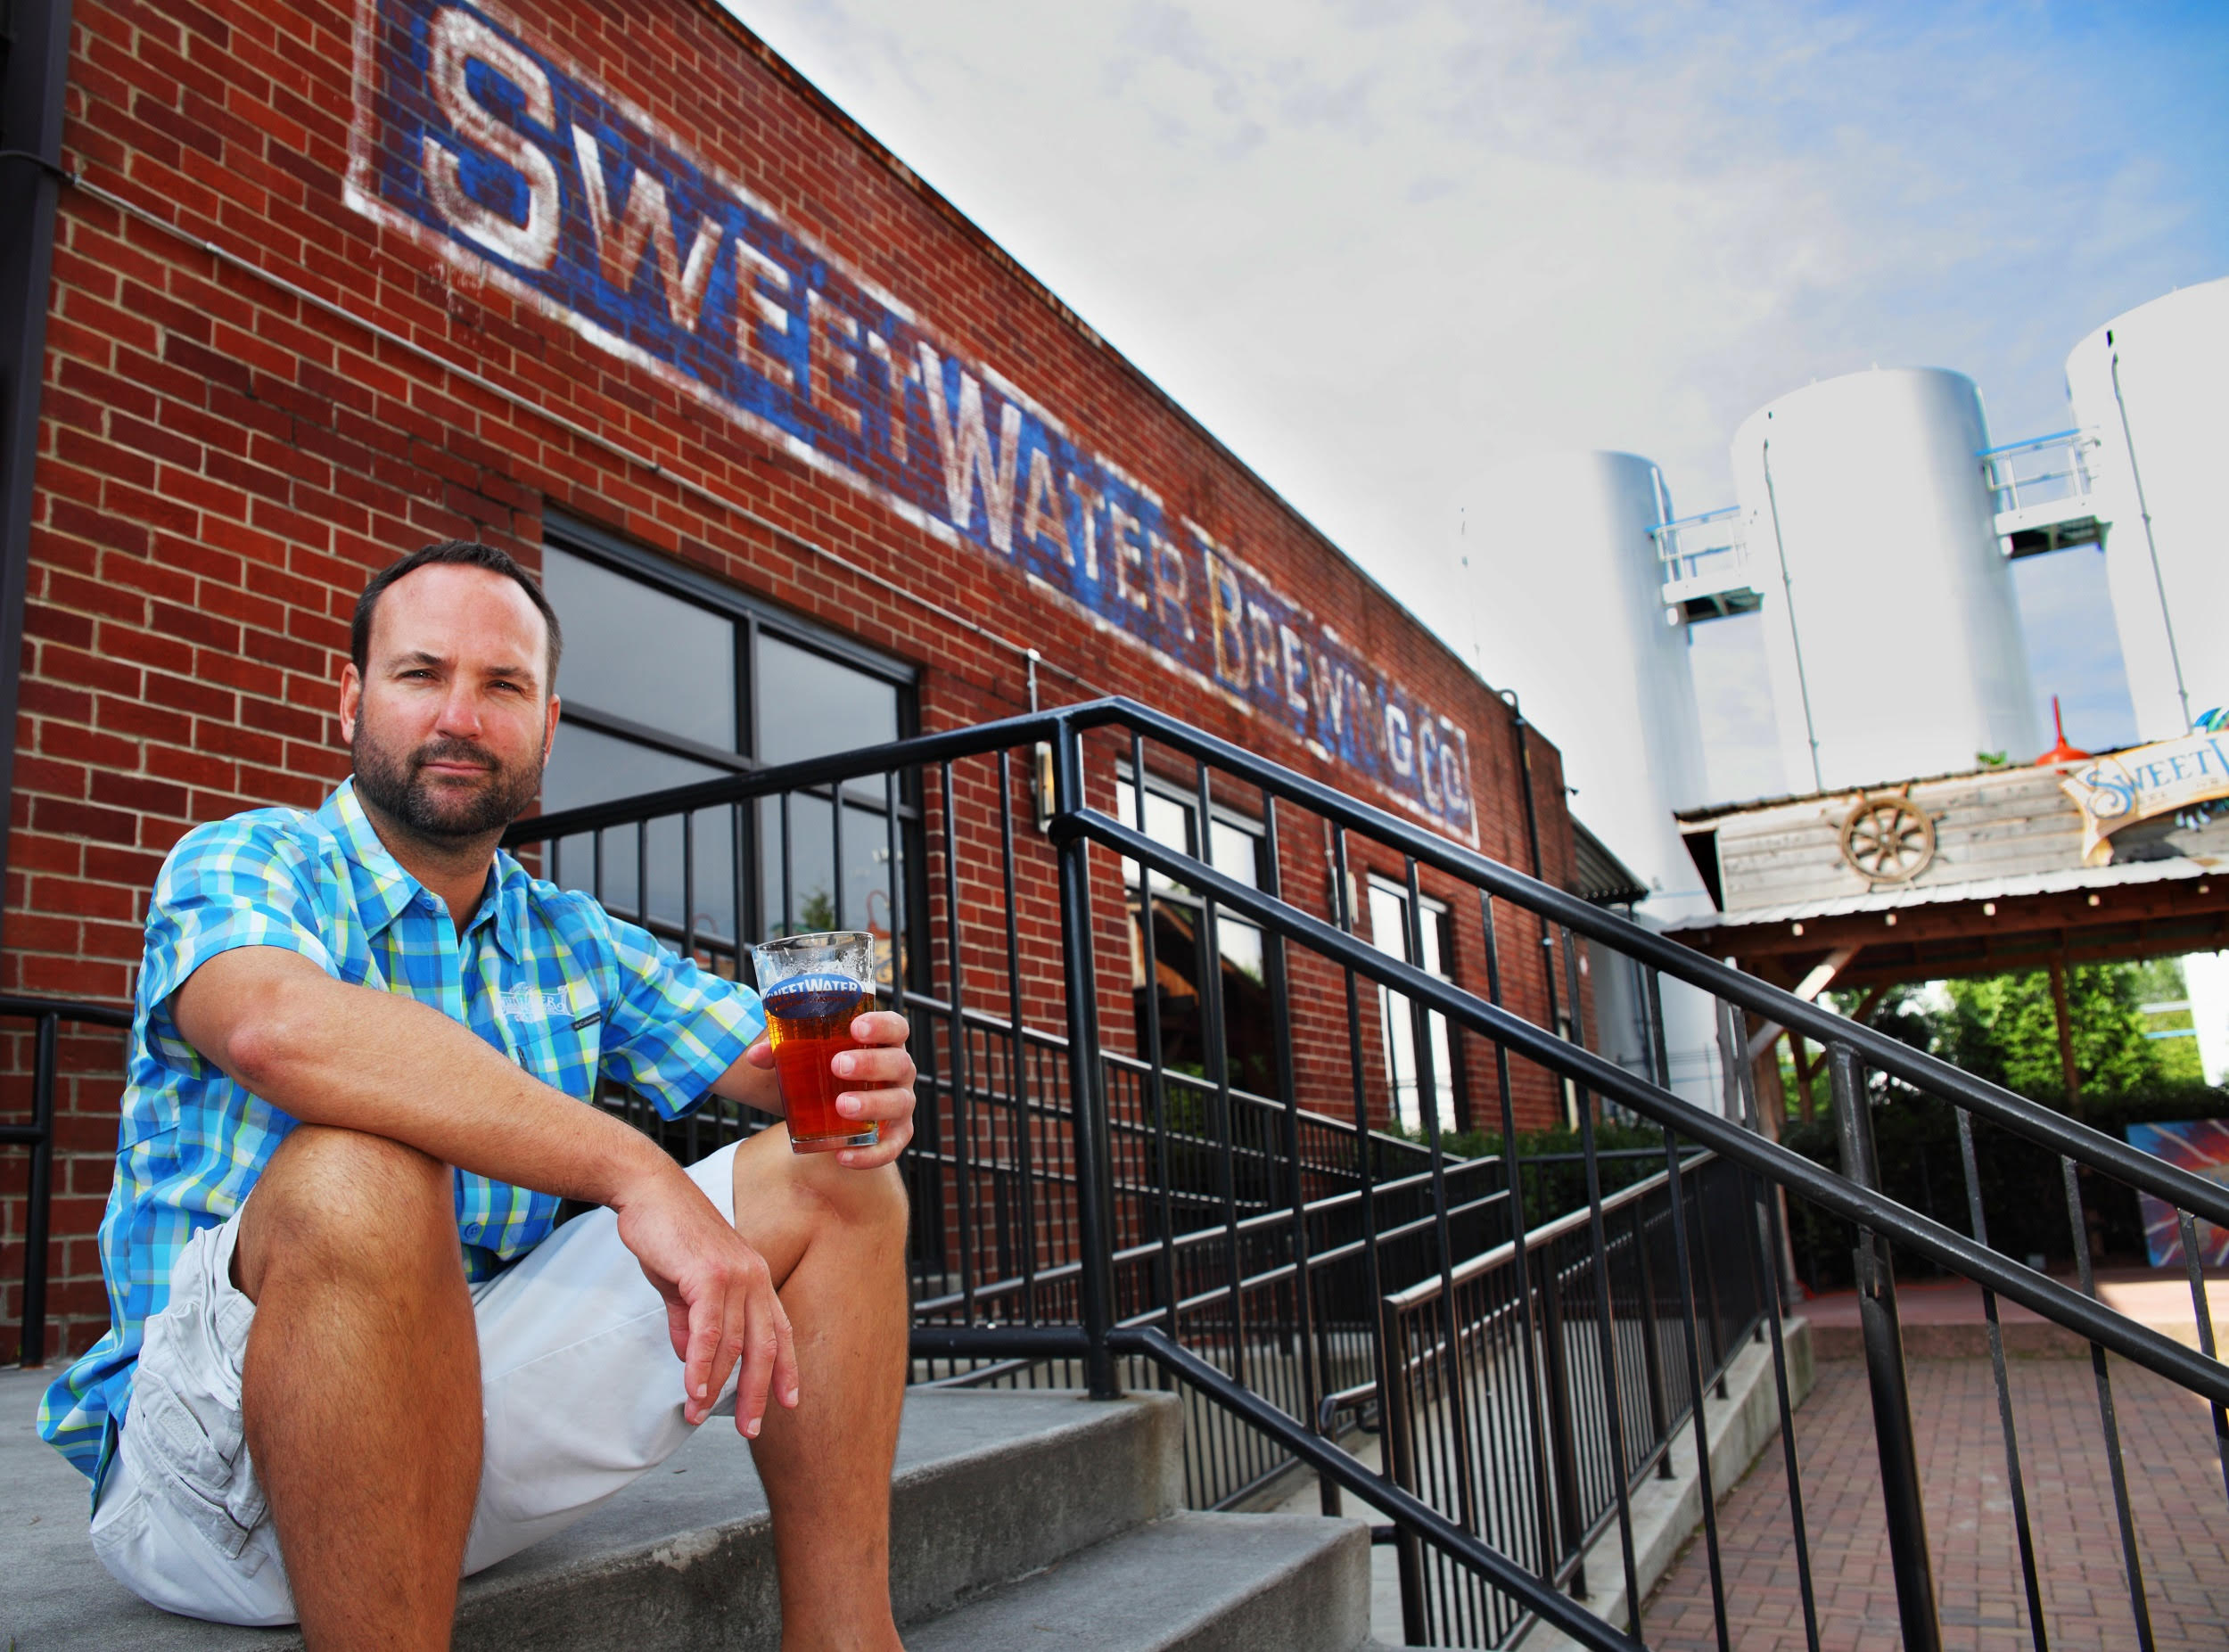 Sweetwater purchases pyramid brewing equipment plans to build second - At Last A Brewery Based In The East Will Expand Its Brewing Capabilities Out West Atlanta S Sweetwater Brewing Said It Plans To Build A Secondary